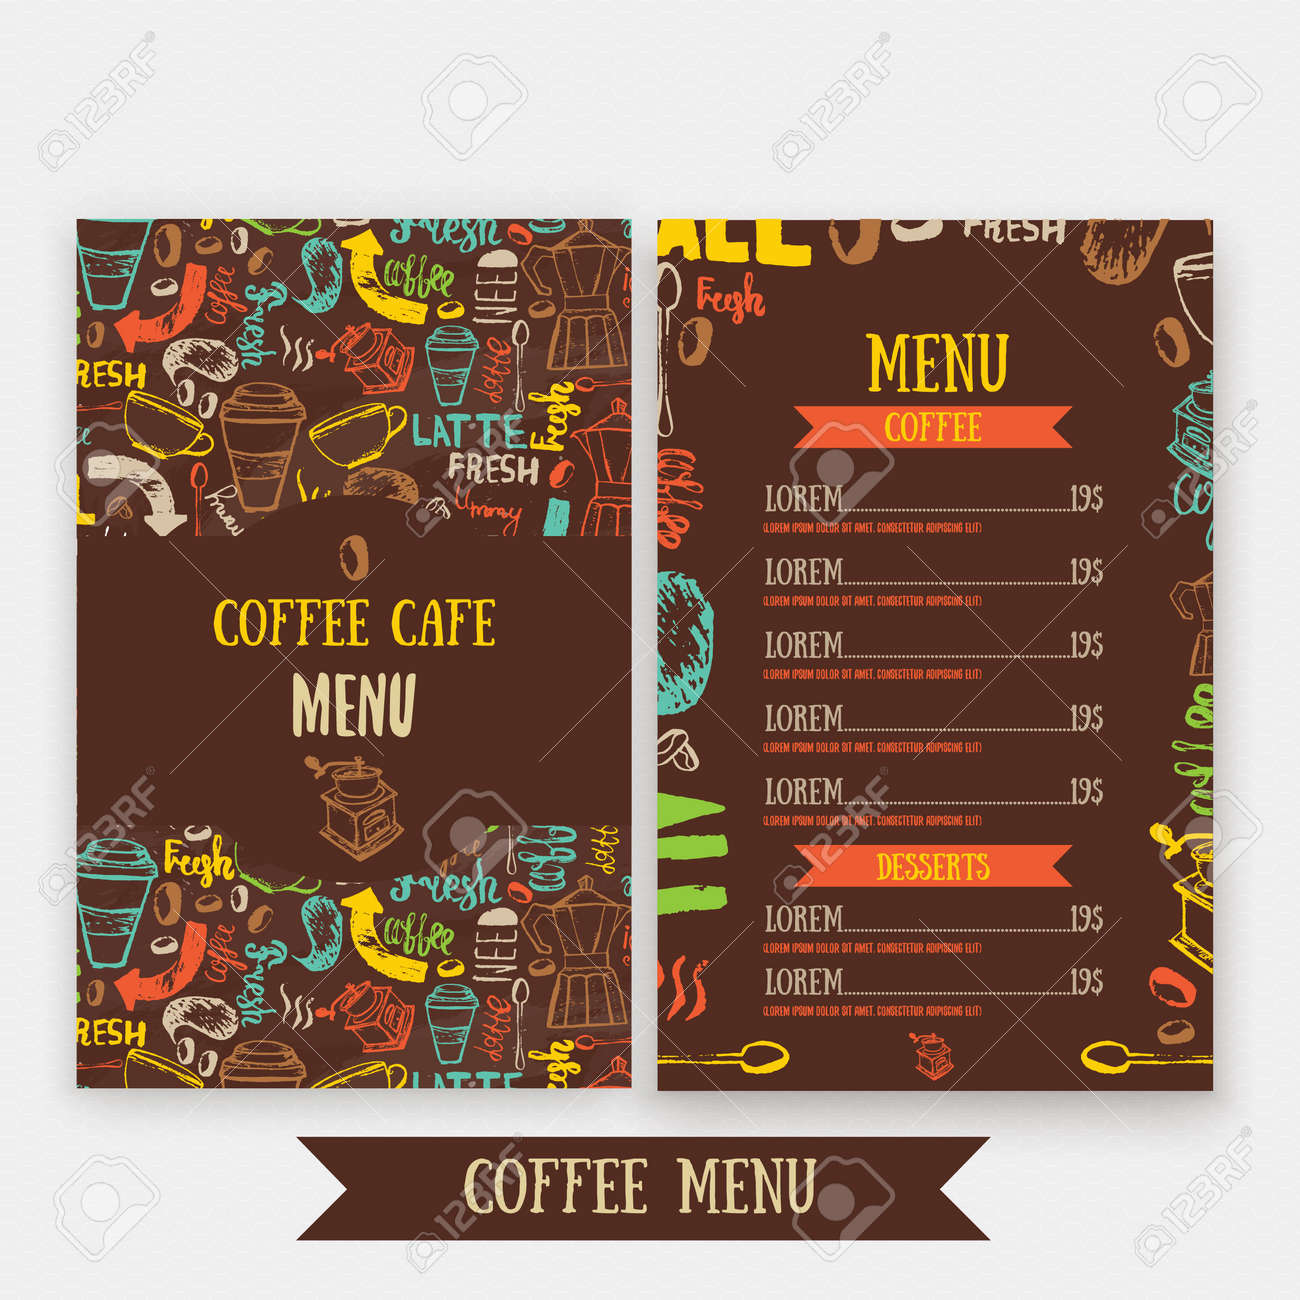 cafe menu template design with lettering for coffee shop hand